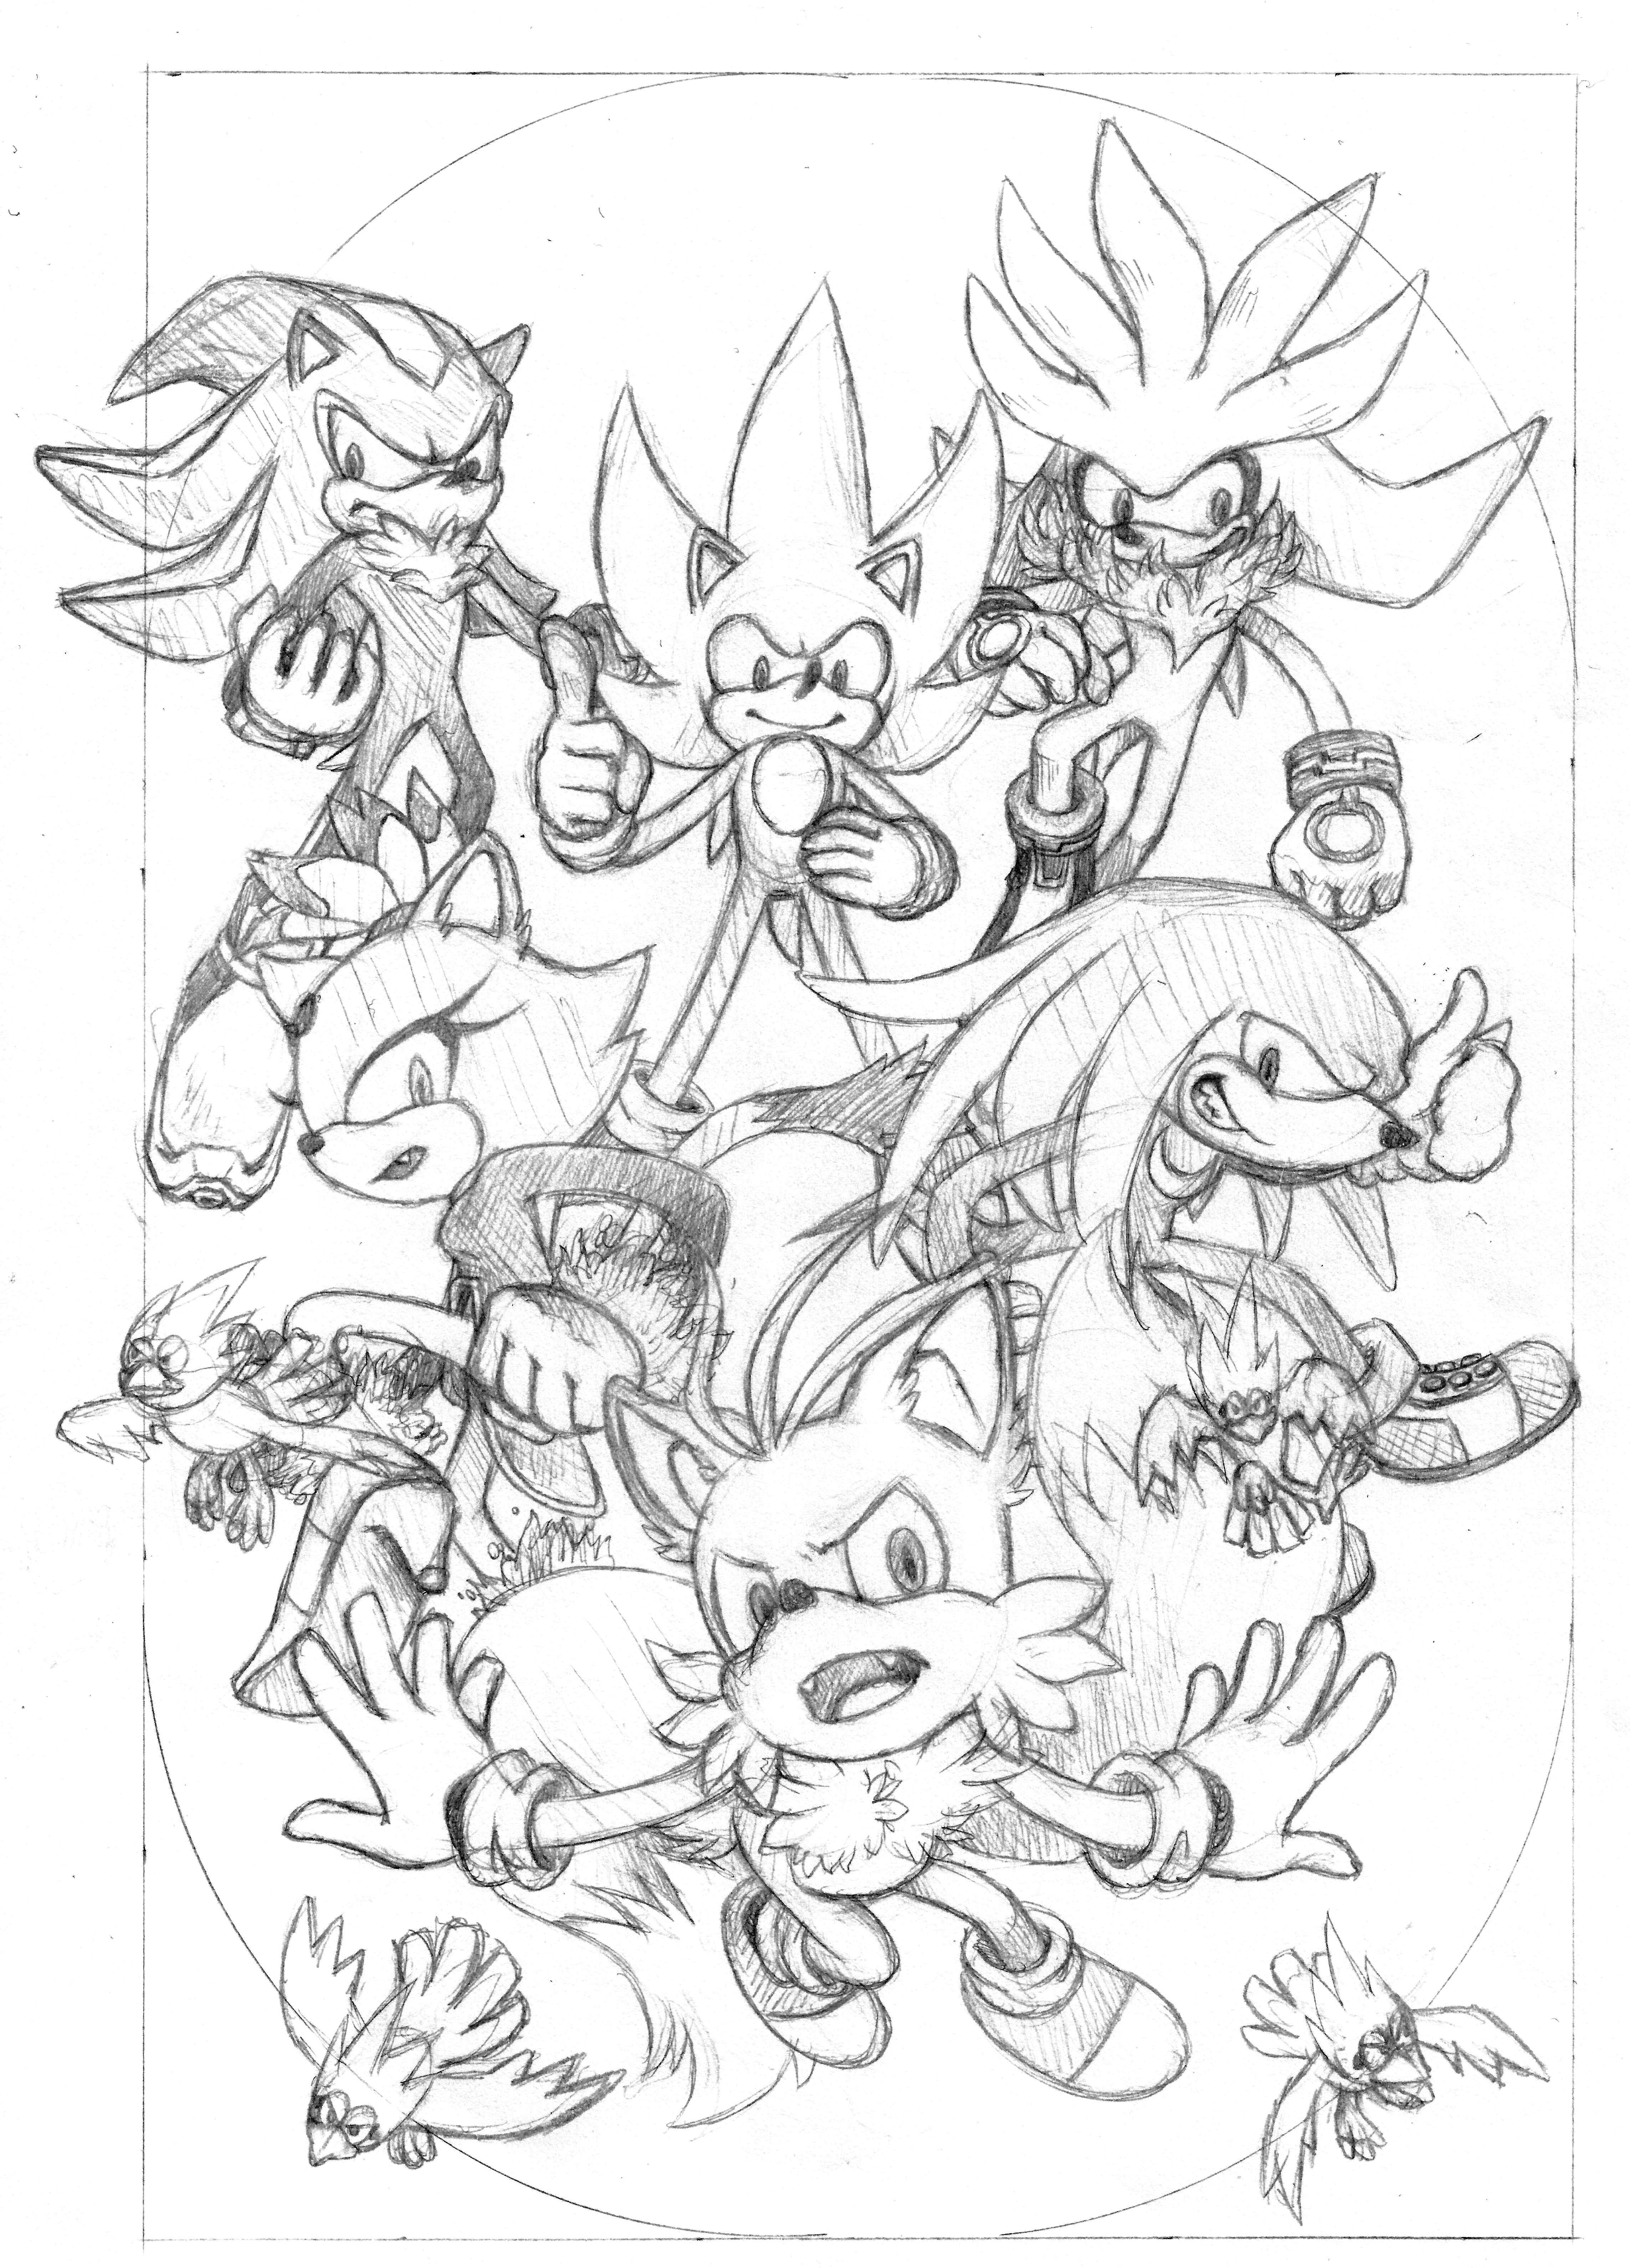 Super Sonic Super Tails Super Knuckles Super Shadow Super Silver And Burning Blaze Sonic The Hedgehog Know Your Meme